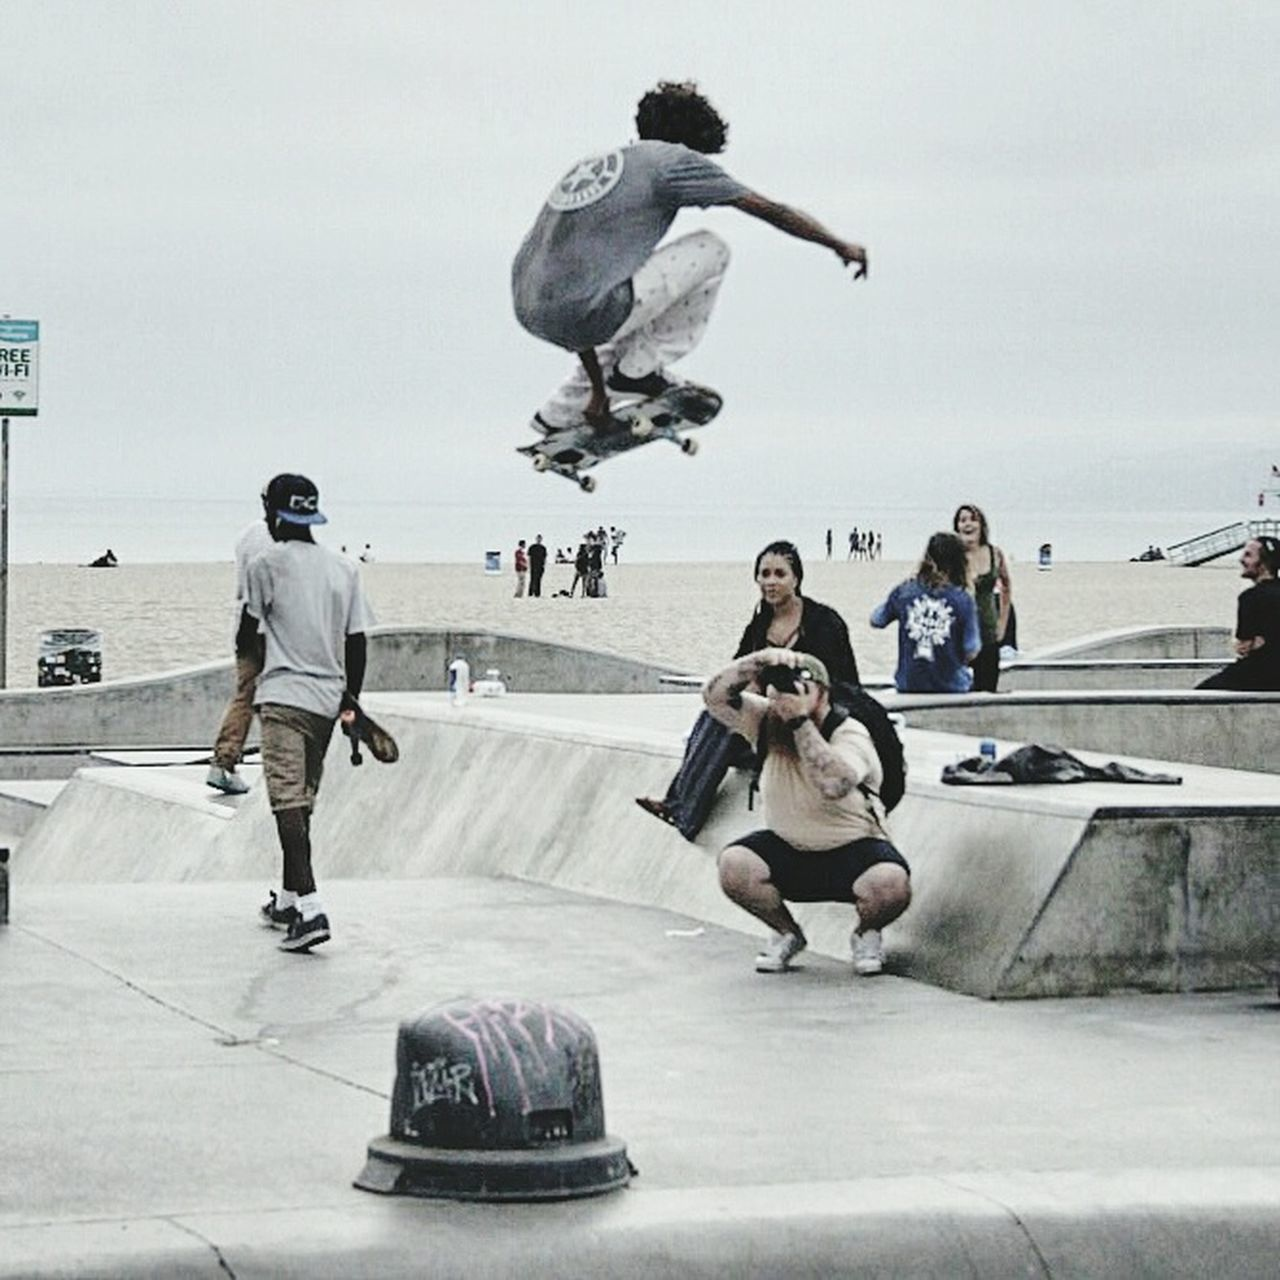 real people, large group of people, leisure activity, full length, sport, skateboard, men, lifestyles, day, skateboard park, sports ramp, stunt, sky, extreme sports, outdoors, sculpture, women, skill, competitive sport, ice rink, people, adult